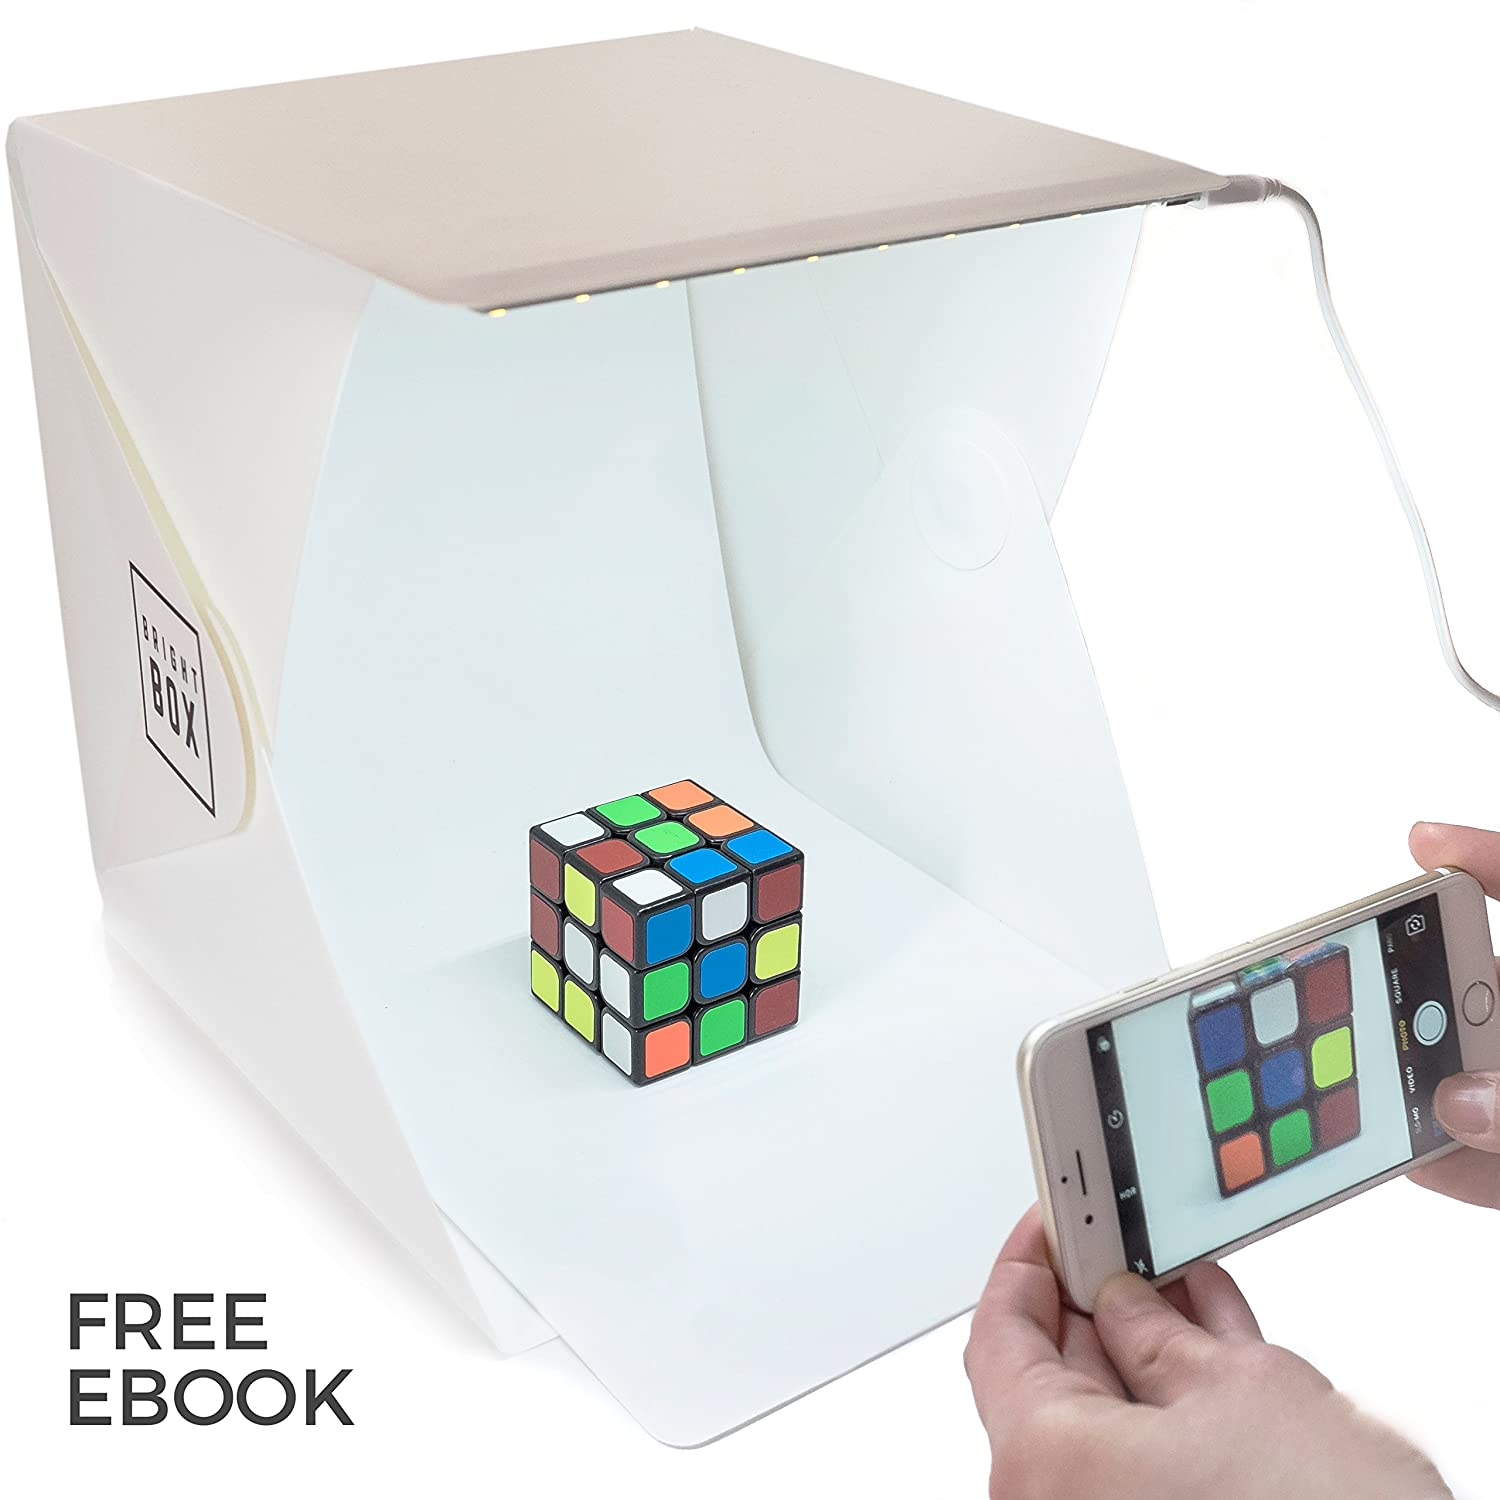 Amazon.com : BrightBox Portable Mini Photo Studio With LED Light ...